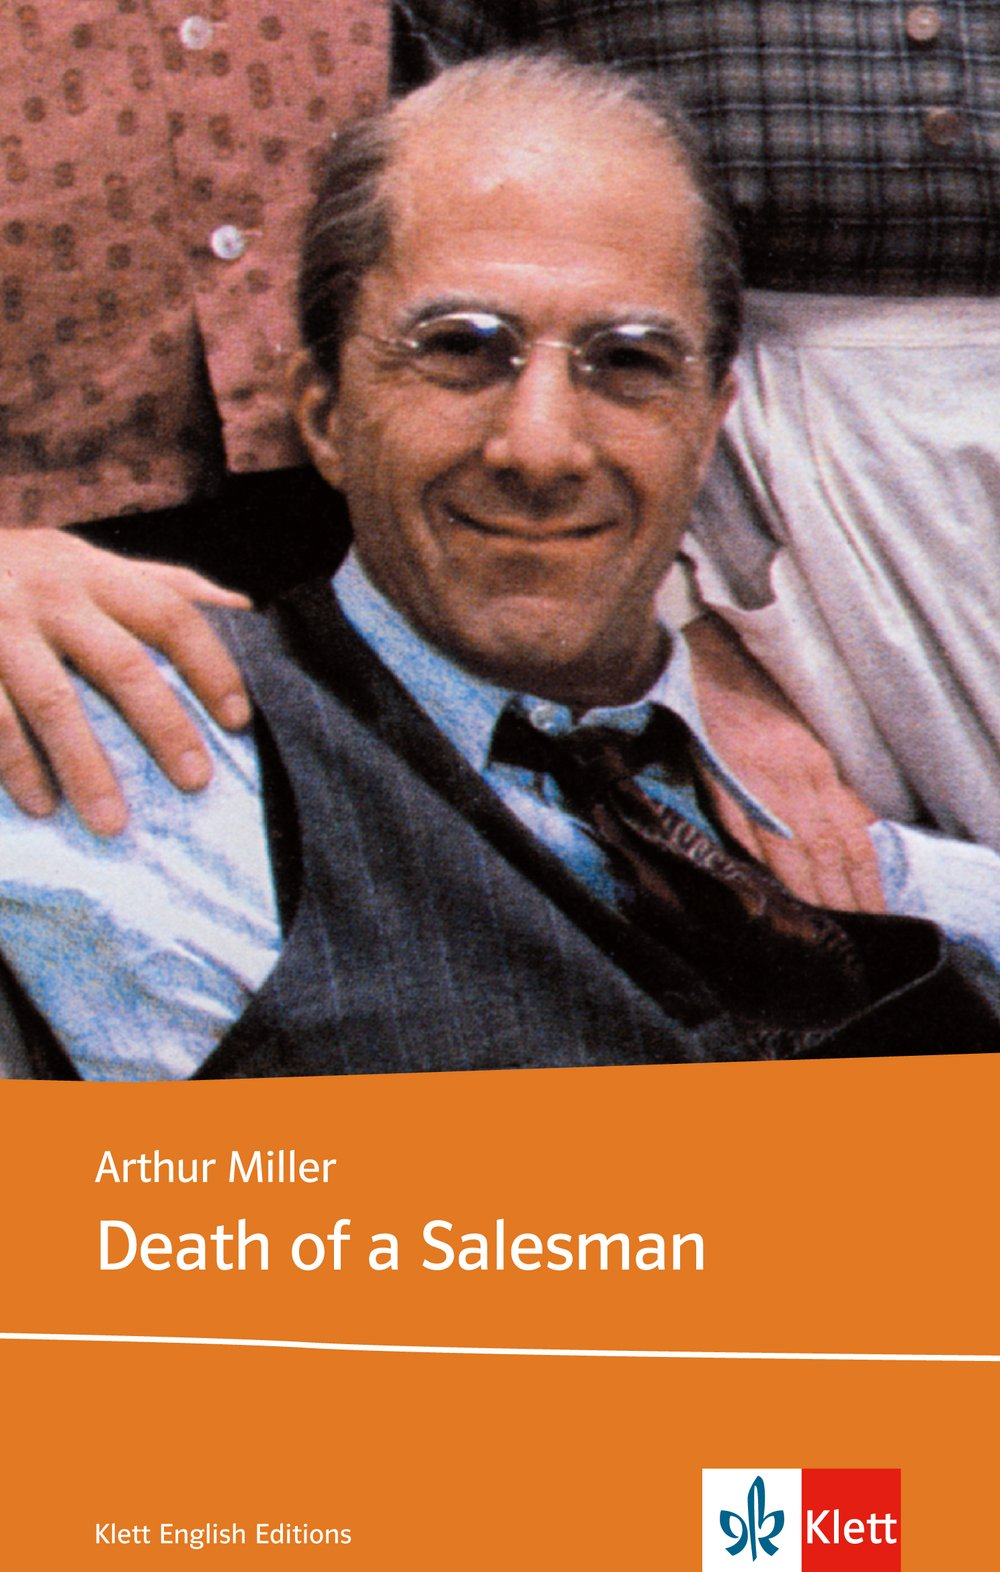 Klett English Editions: Death of a Salesman. Certain Private Conversations in Two Acts and a Requiem. Text and Study Aids